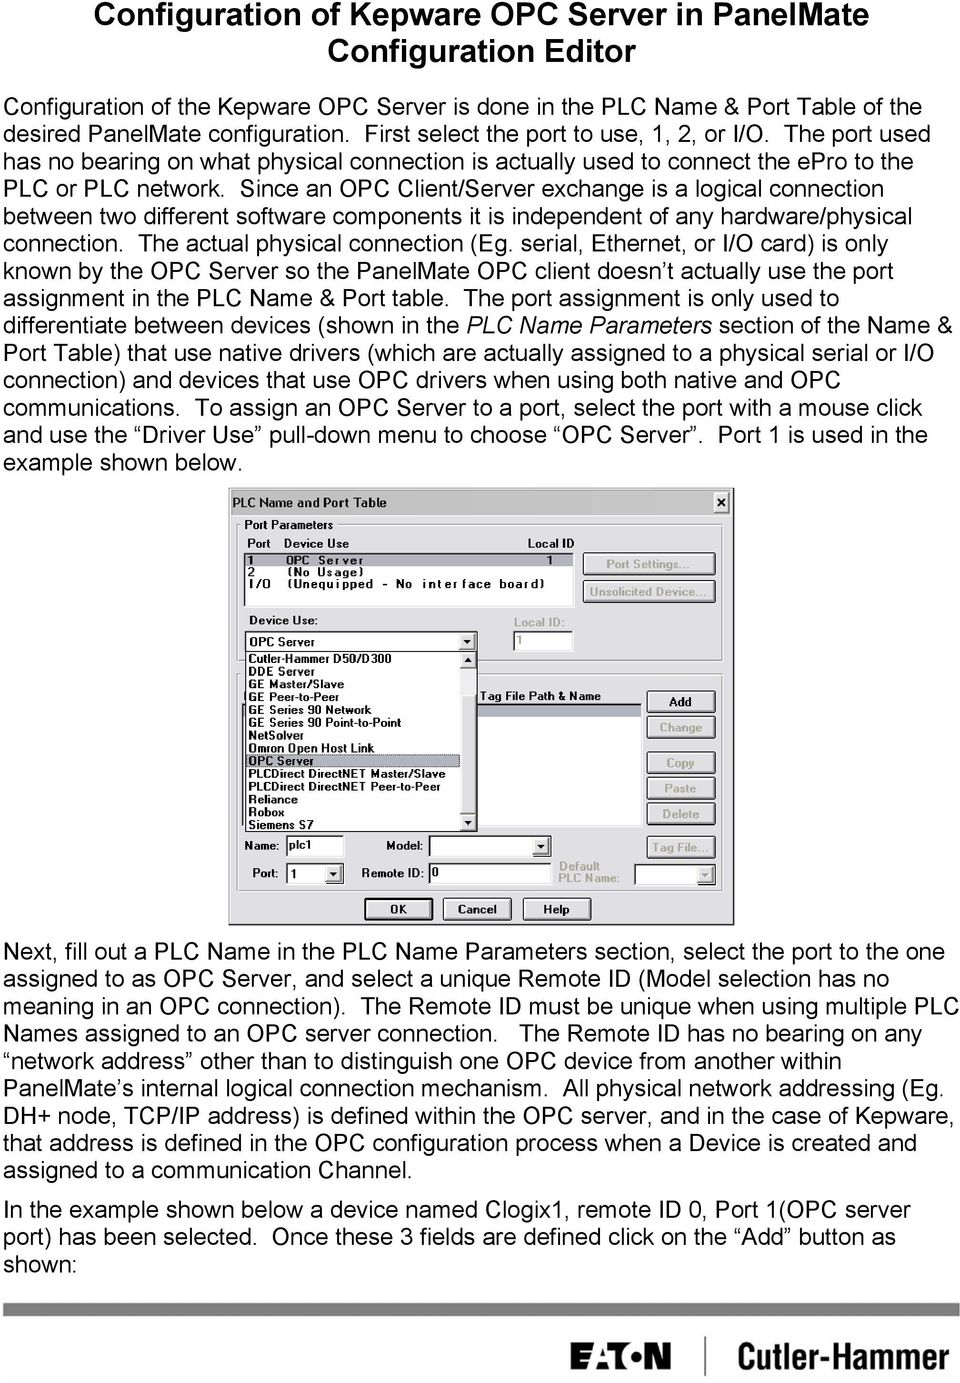 Configuration of Kepware OPC Server in PanelMate Configuration